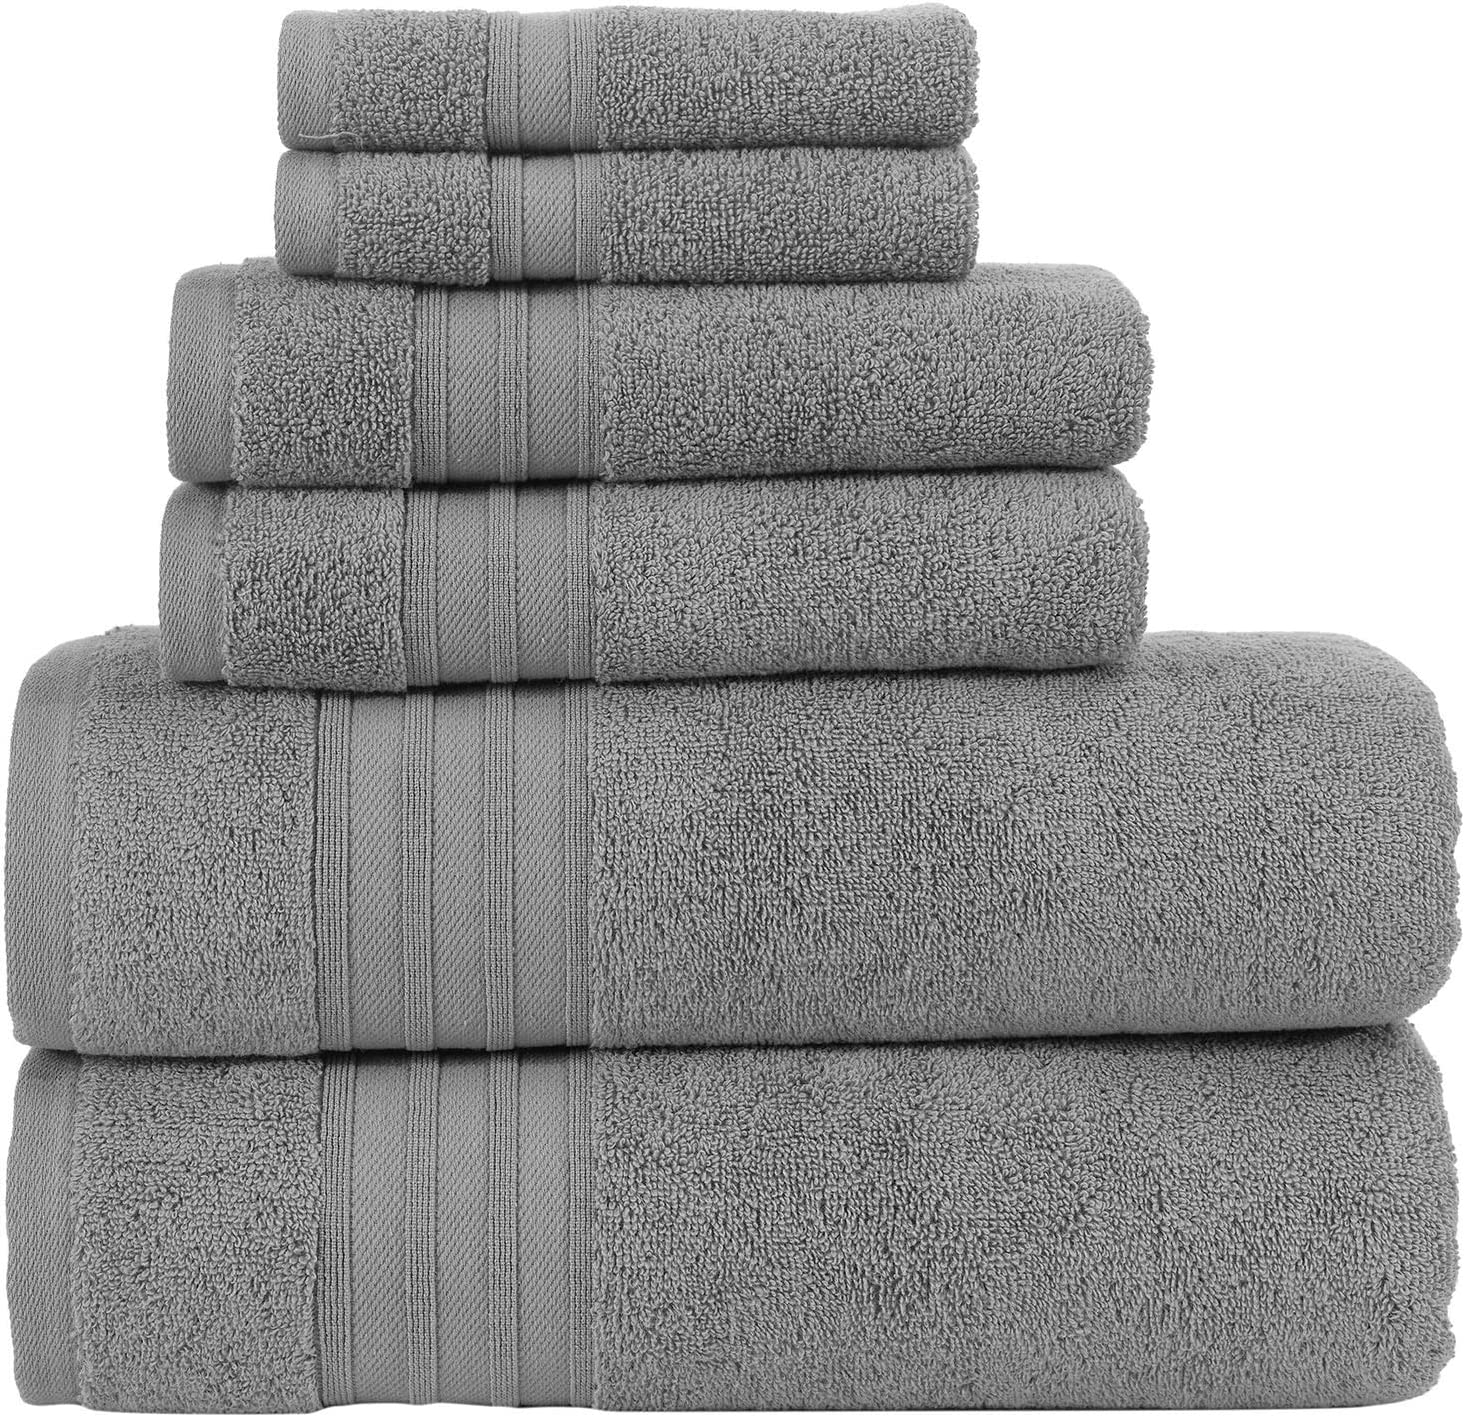 Hammam Linen 100% Cotton 6 Piece Towel Set, Cool Grey Super Soft, Fluffy, and Absorbent, Premium Quality Perfect for Daily Use (2 x Bath Towels, 2 x Hand Towels, 2 x Washcloths): Kitchen & Dining